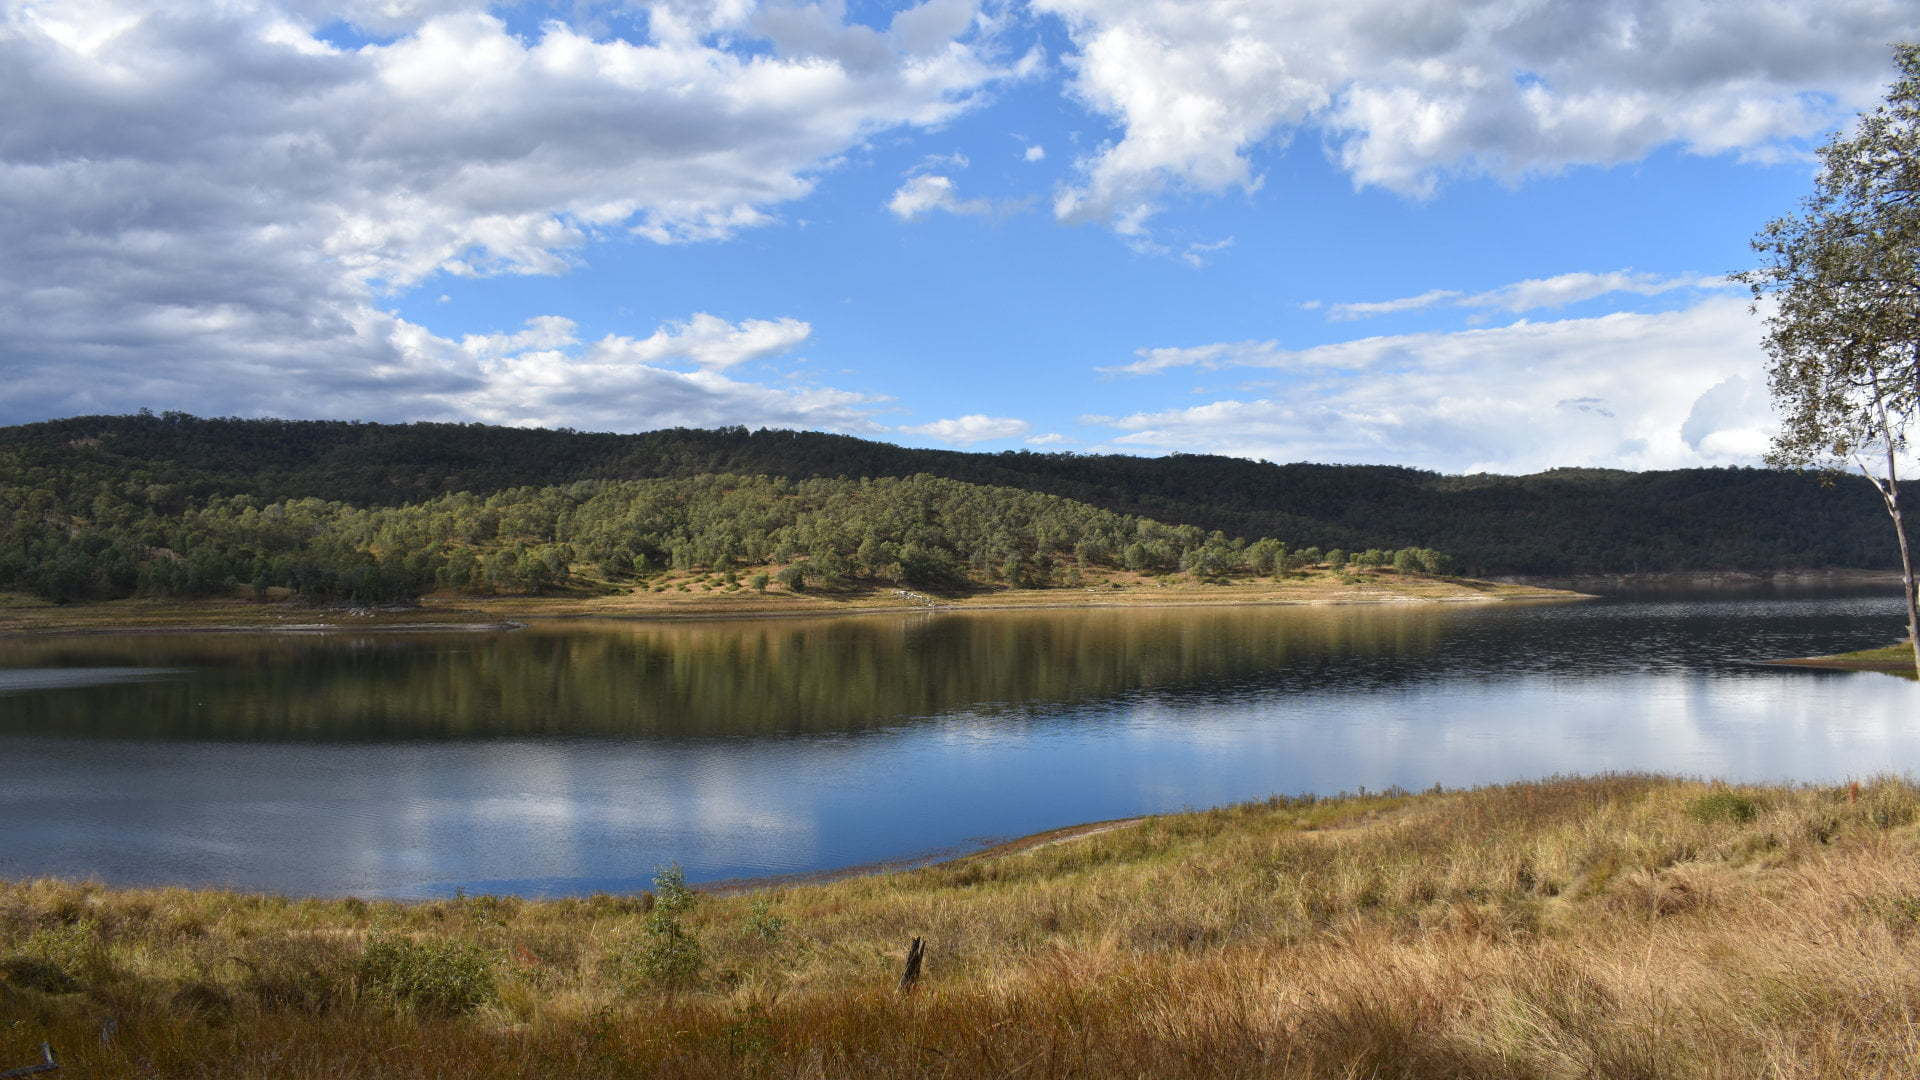 View over Lake Cressbrook, from the walk along the shores of the dam. Lake Cressbrook is a water supply dam for Toowoomba, with camping and day use areas. Boating, canoeing, and fishing are permitted